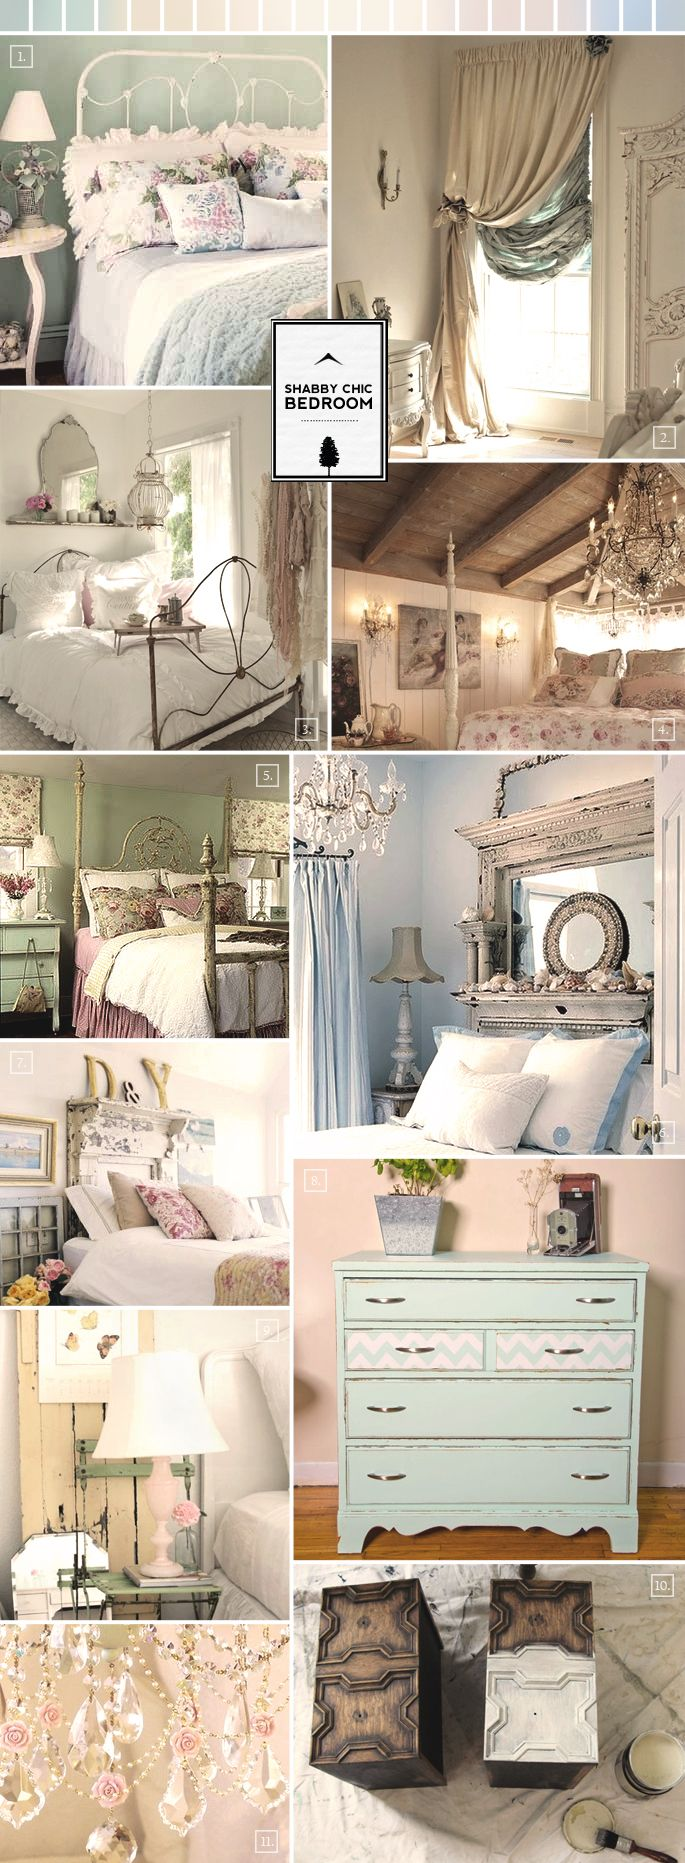 shabby chic bedroom ideas and decor inspiration - Ideas For Shabby Chic Bedroom